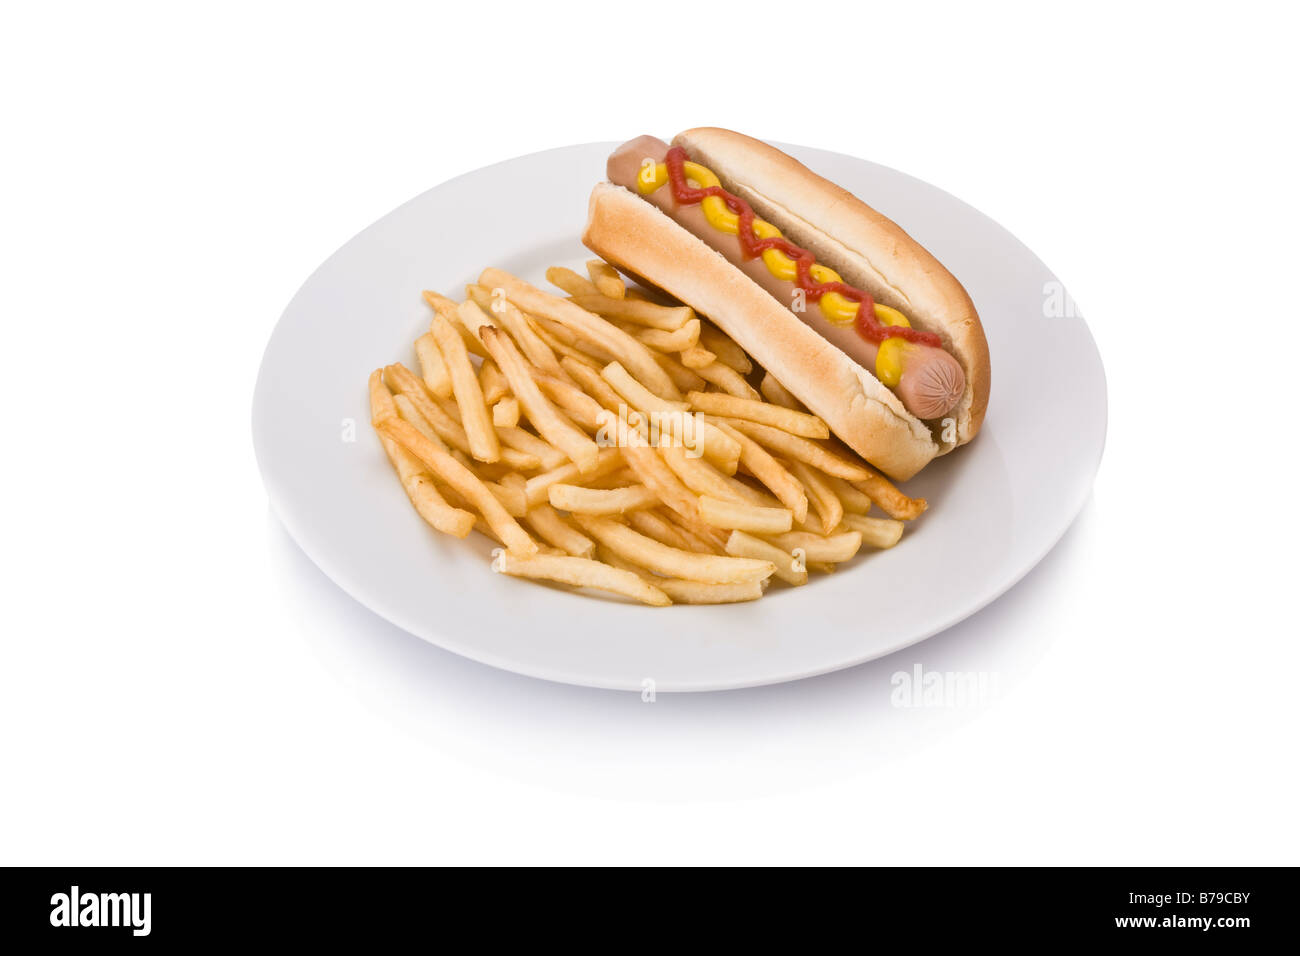 Fast food meal with Hotdog and French fries in a dish - Stock Image